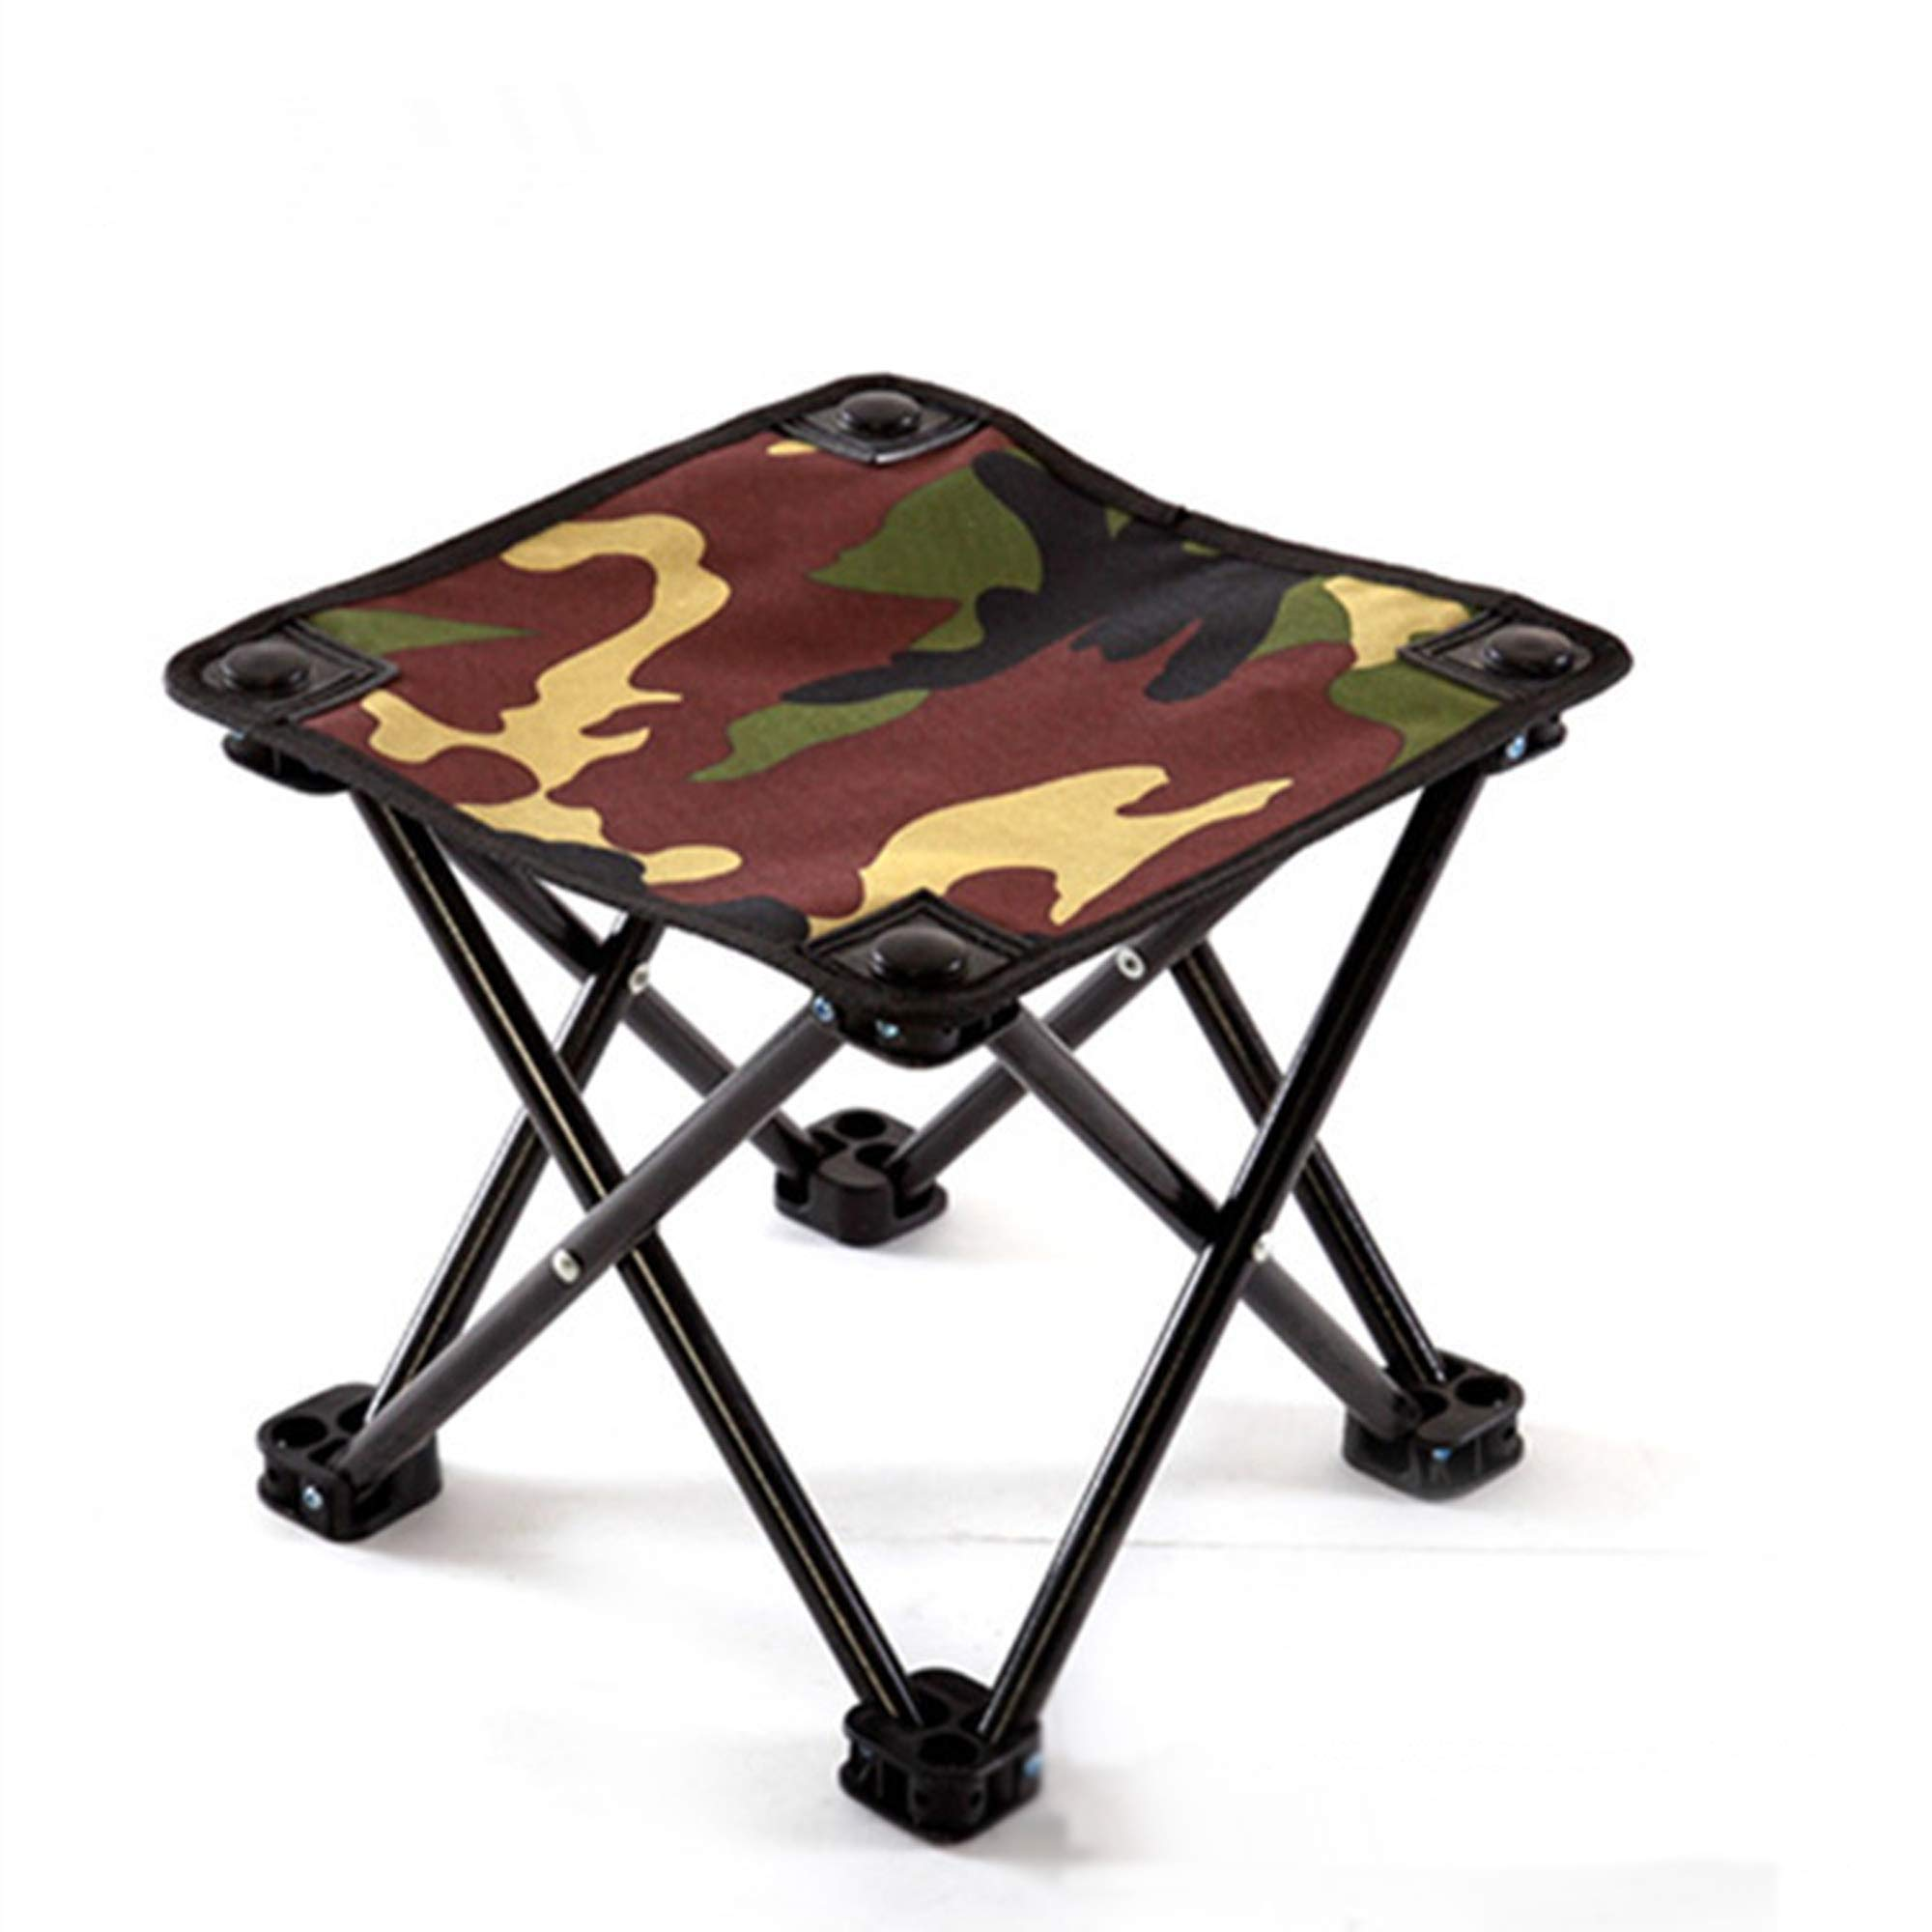 Jasmine Dreamin Folding Camping Stool, Mini Portable Folding Chair, Outdoor Slacker Chair for Camping Fishing Hiking Beach BBQ with a Storage Bag